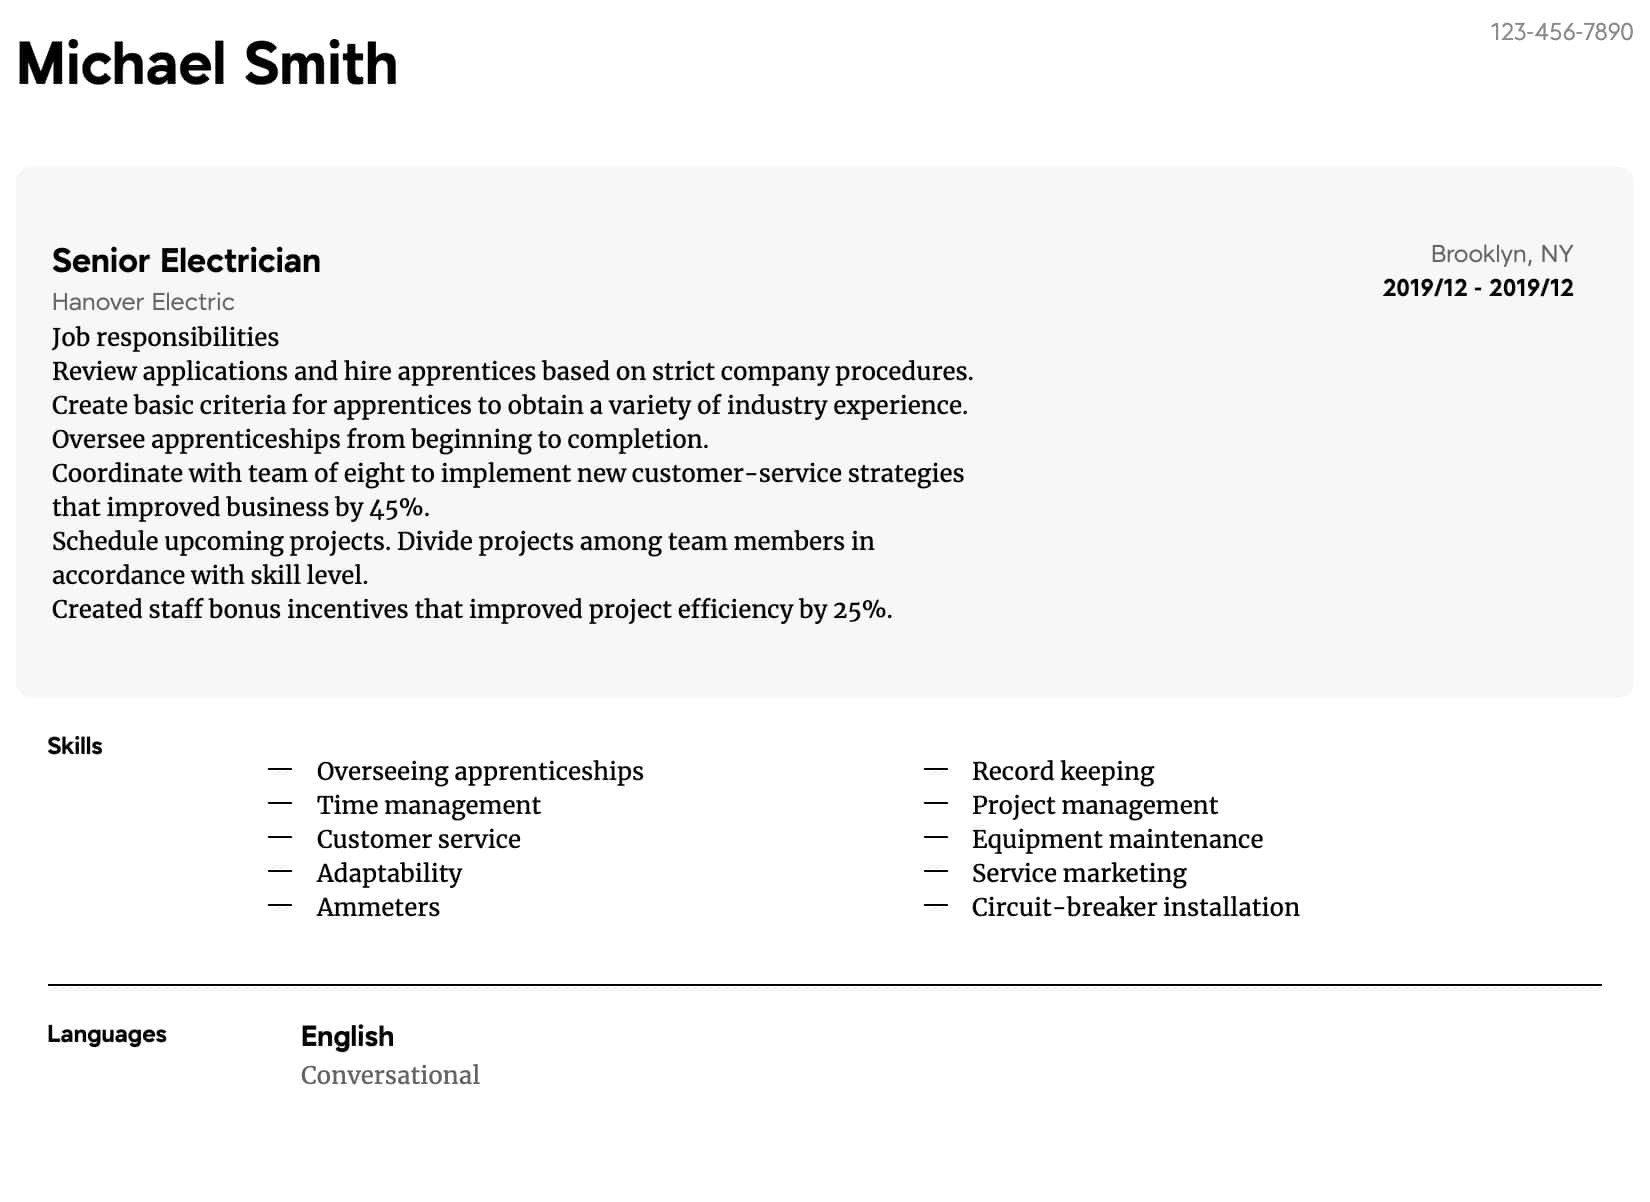 electrician resume samples all experience levels skills for intermediate mckinsey Resume Resume Skills For Electrician